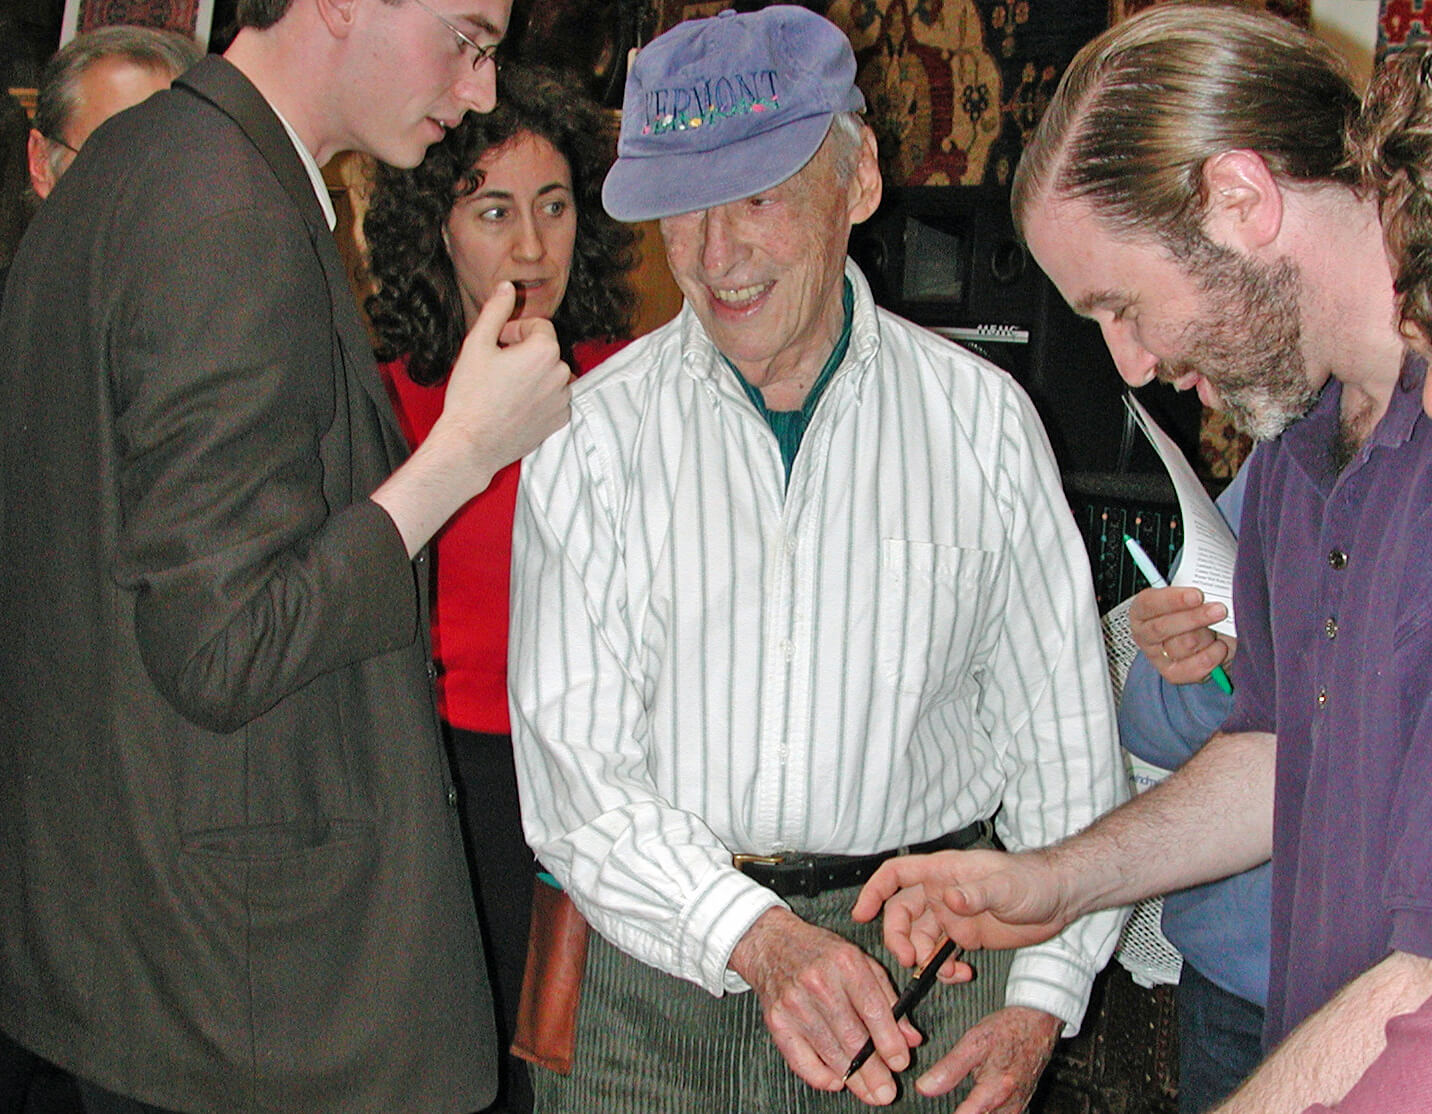 Saul Bellow at the Brattleboro Literary Festival